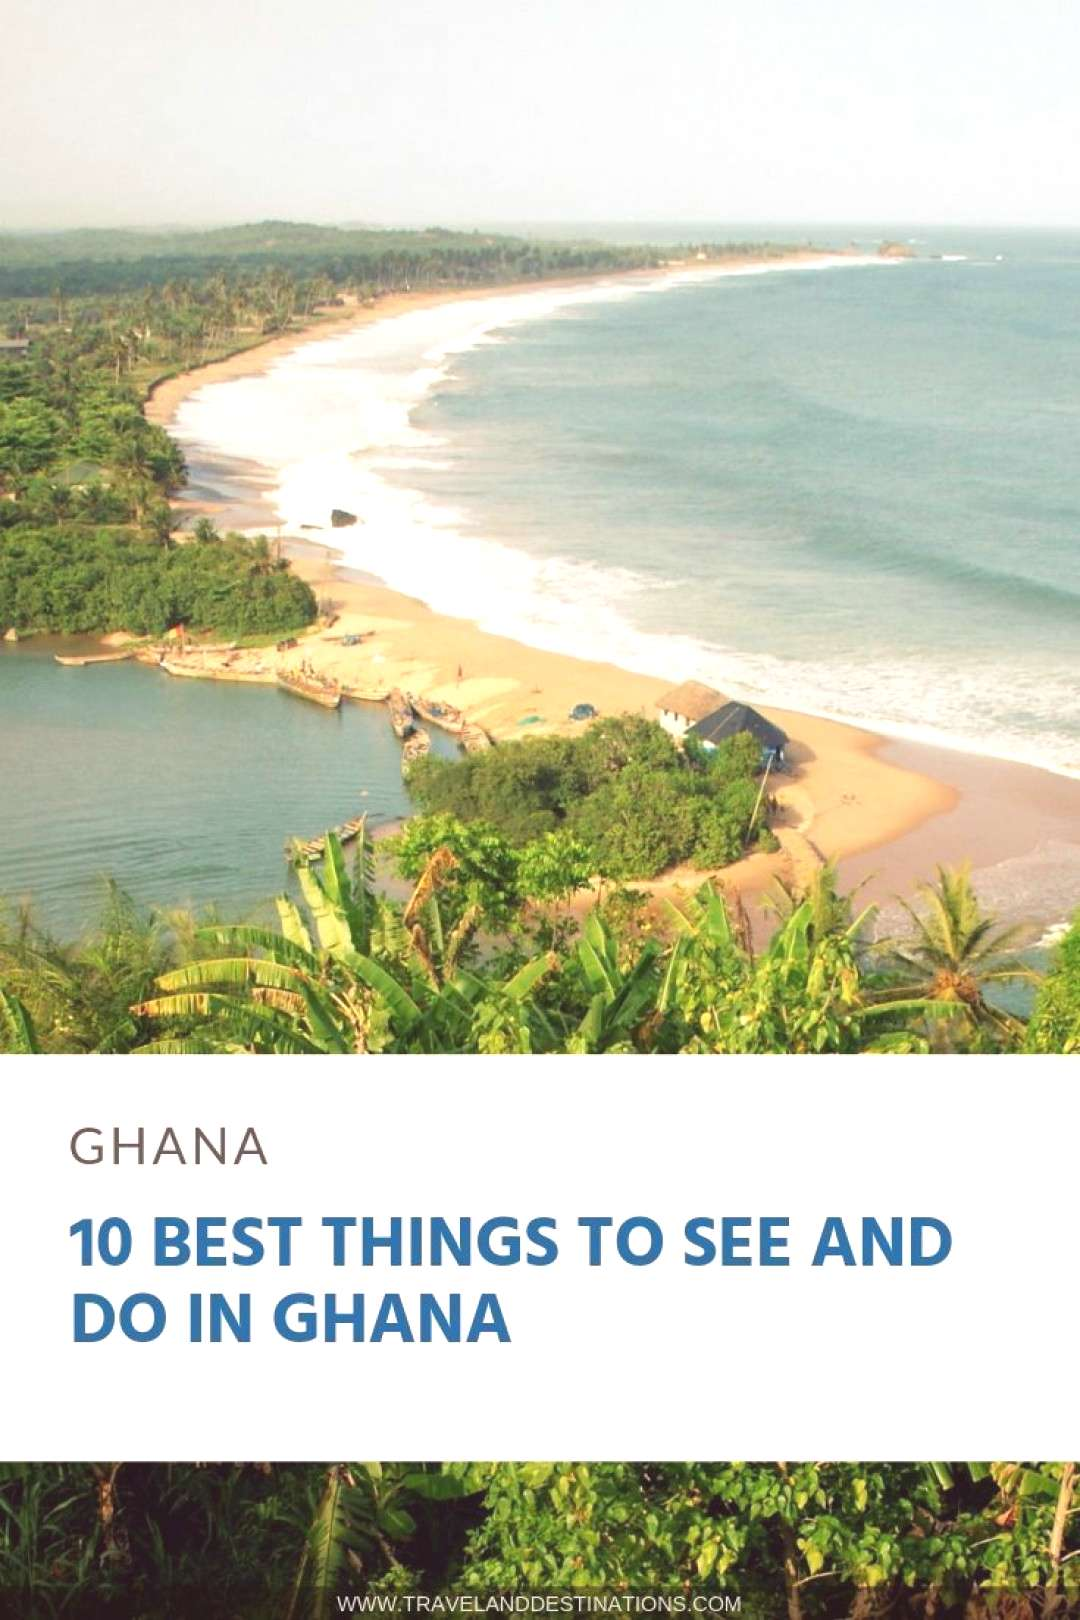 10 Best Things to See and Do in Ghana Learn about 10 of the best things to see and do in Ghana, Afr